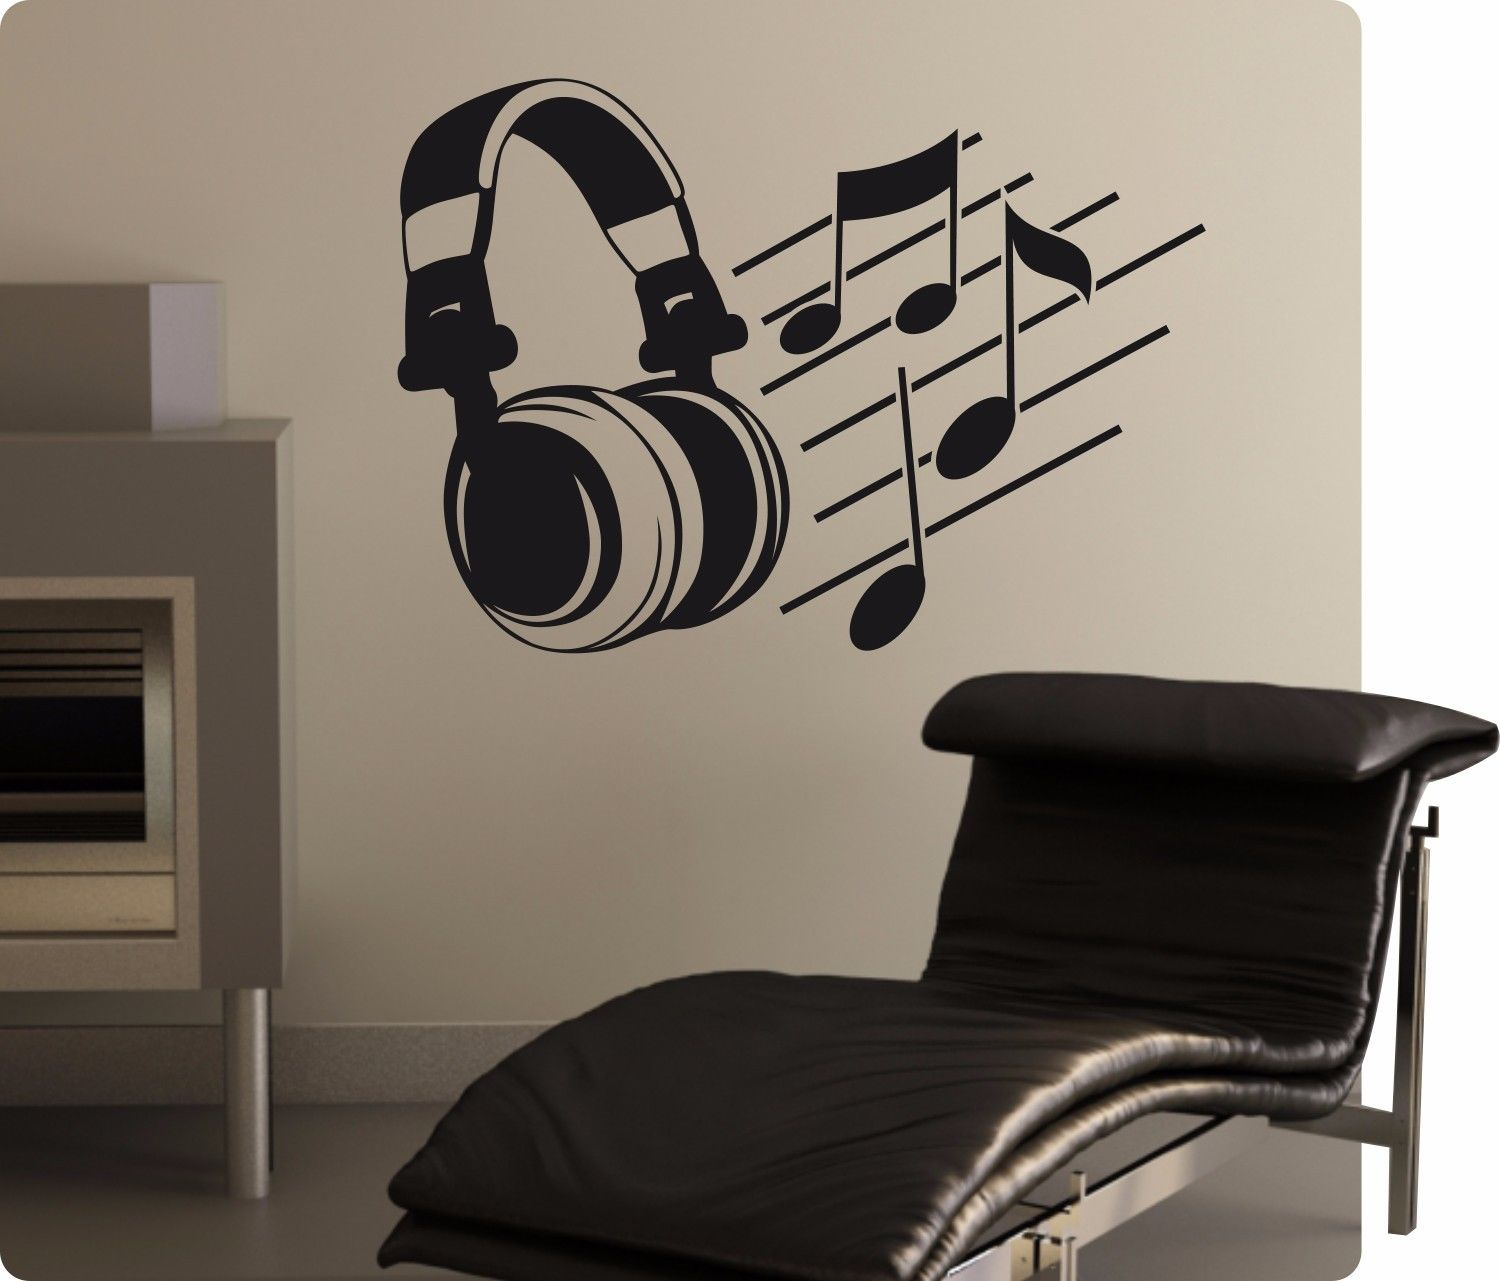 musik tanz disco retro wandtattoo wandaufkleber aufkleber sticker deko no 2. Black Bedroom Furniture Sets. Home Design Ideas